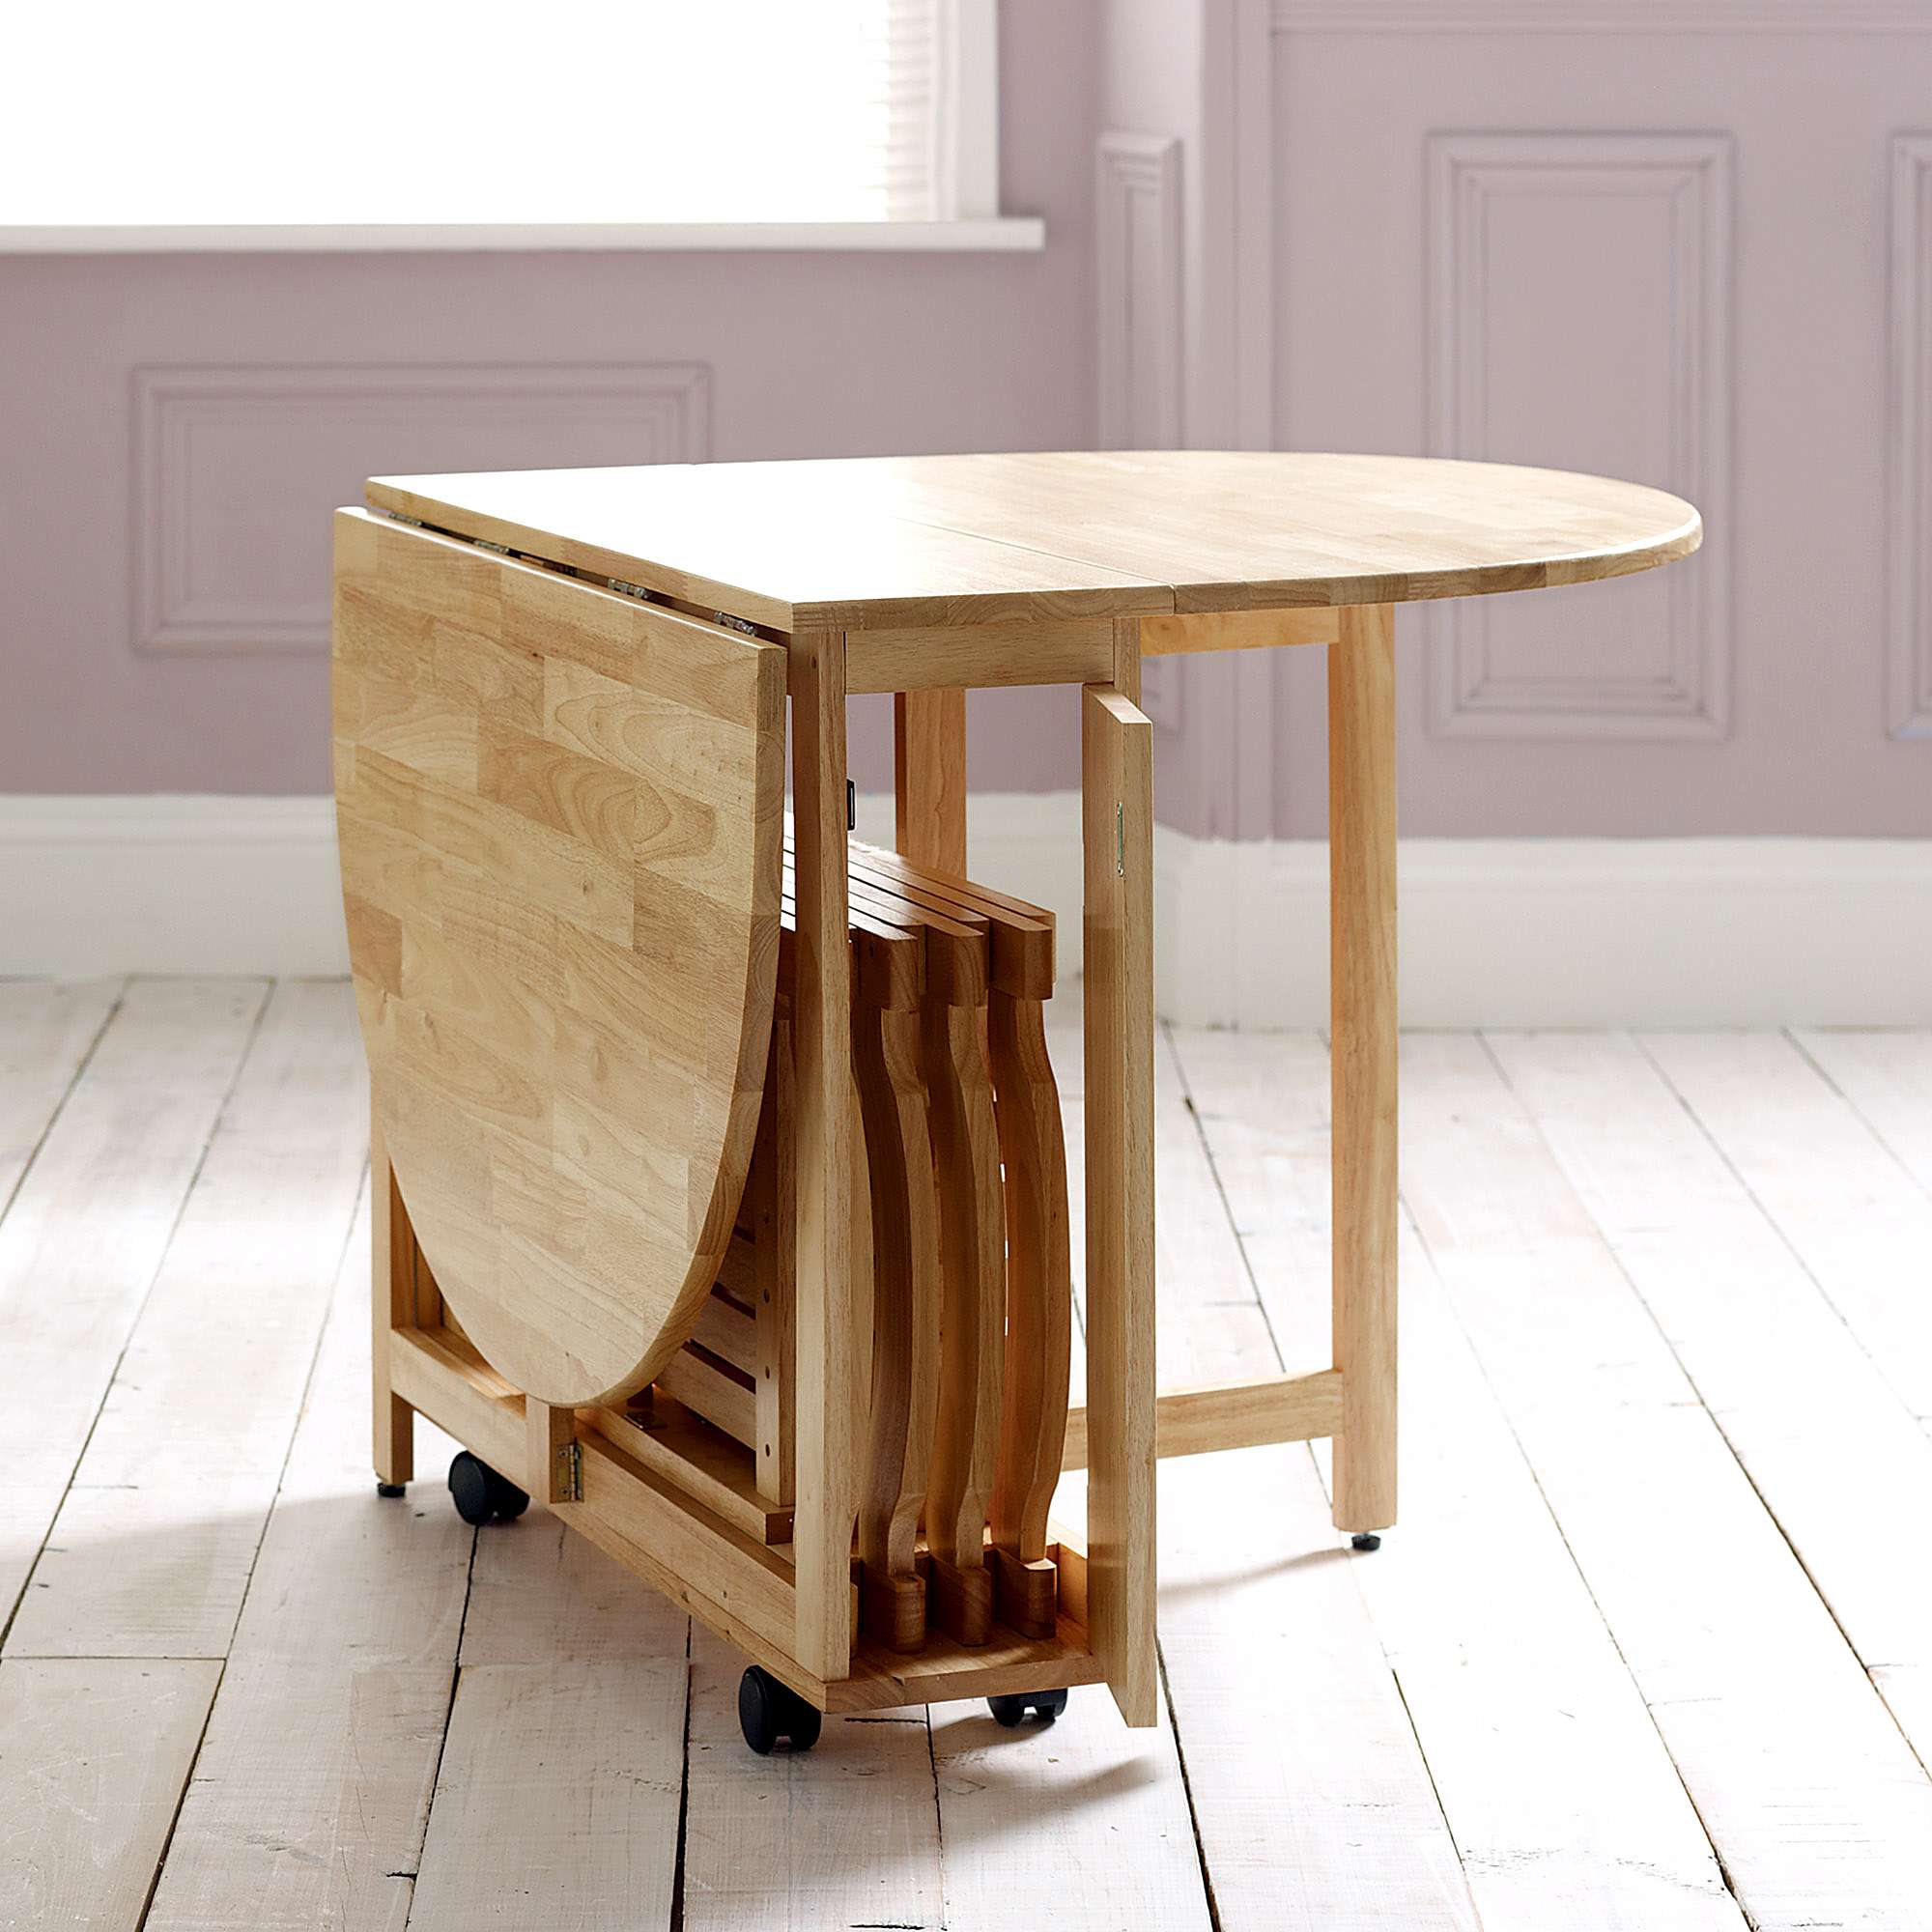 Apartment Kitchen Table And Chairs: Choose A Folding Dining Table For A Small Space